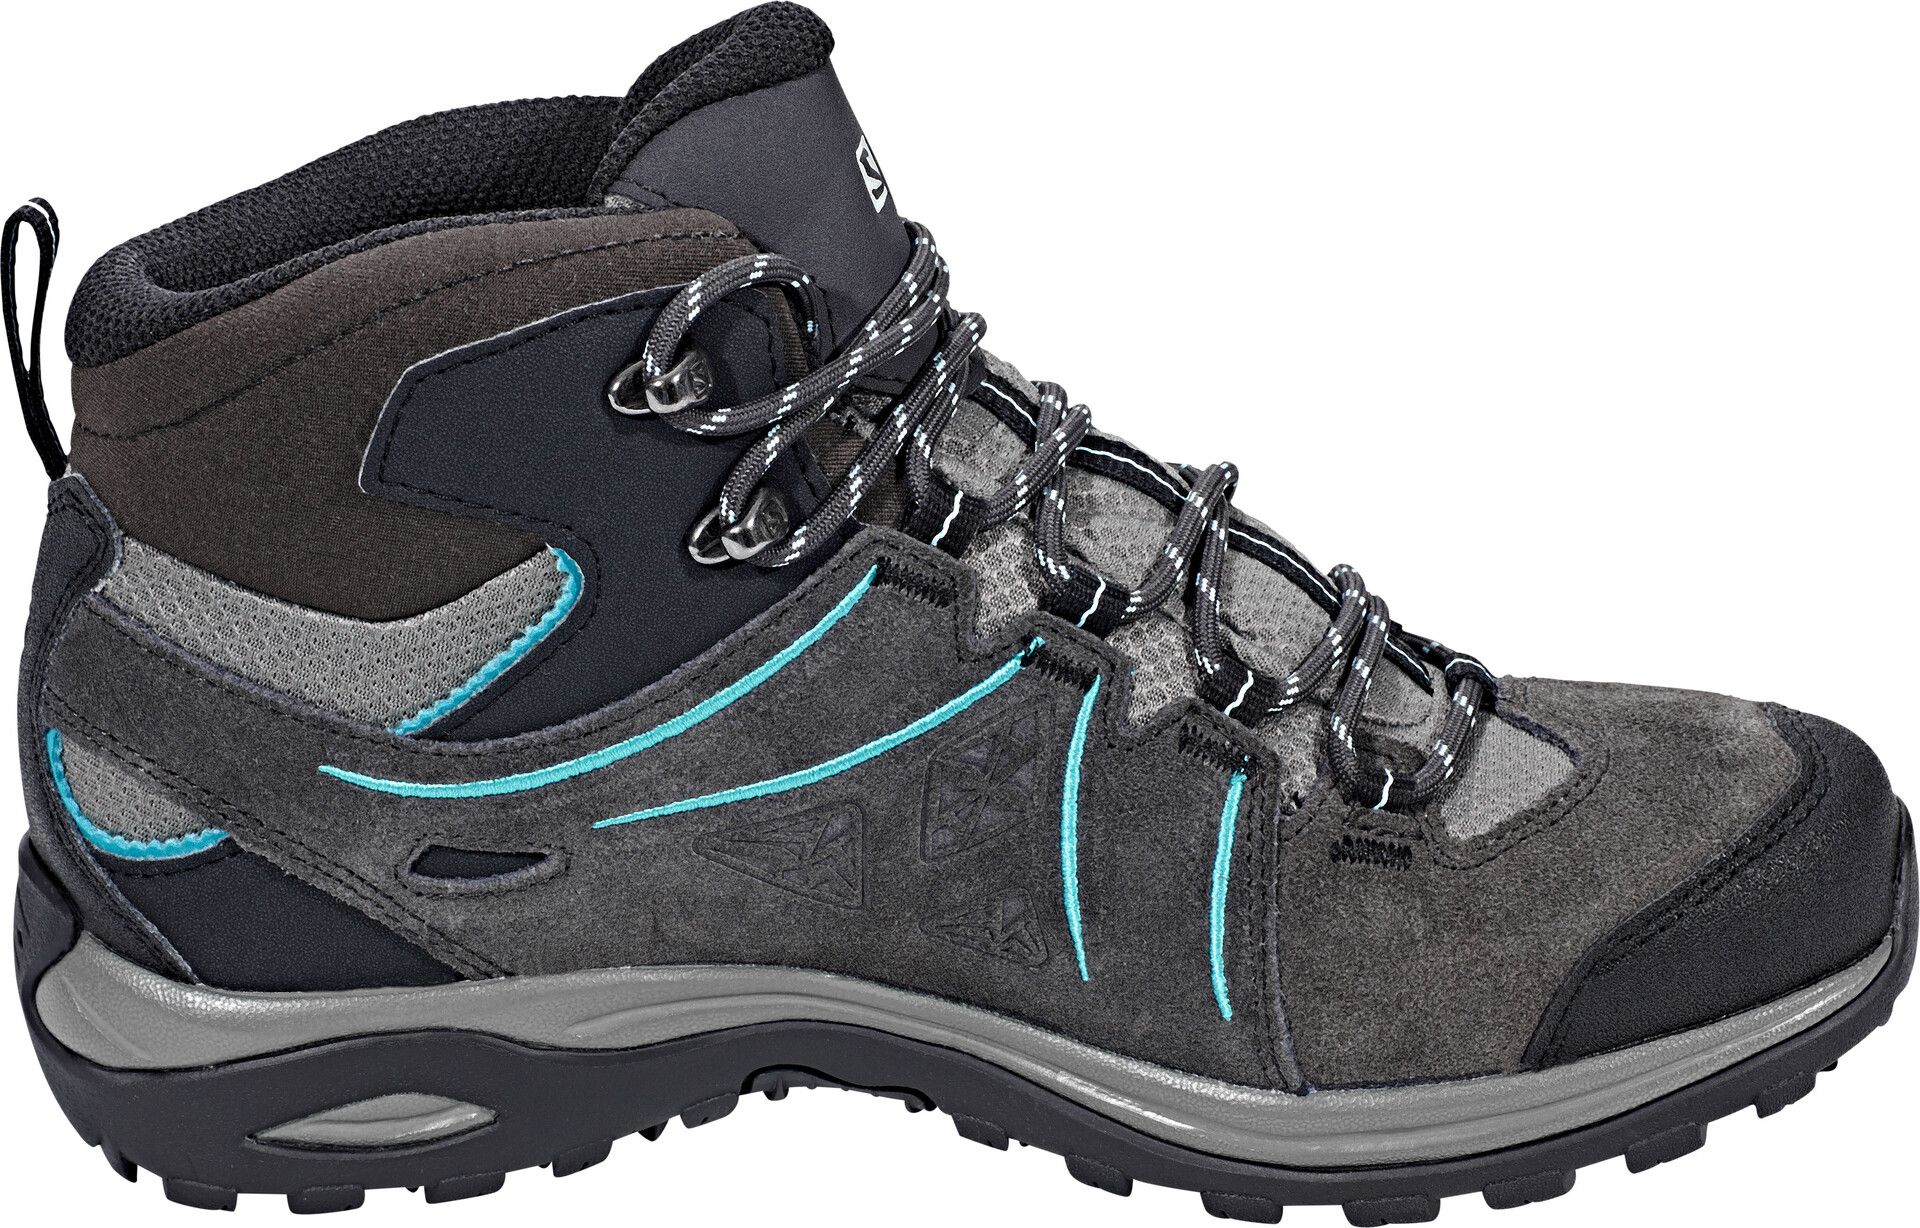 Salomon Ellipse 2 Mid LTR GTX Schoenen Dames, phantomcastor grayaruba blue